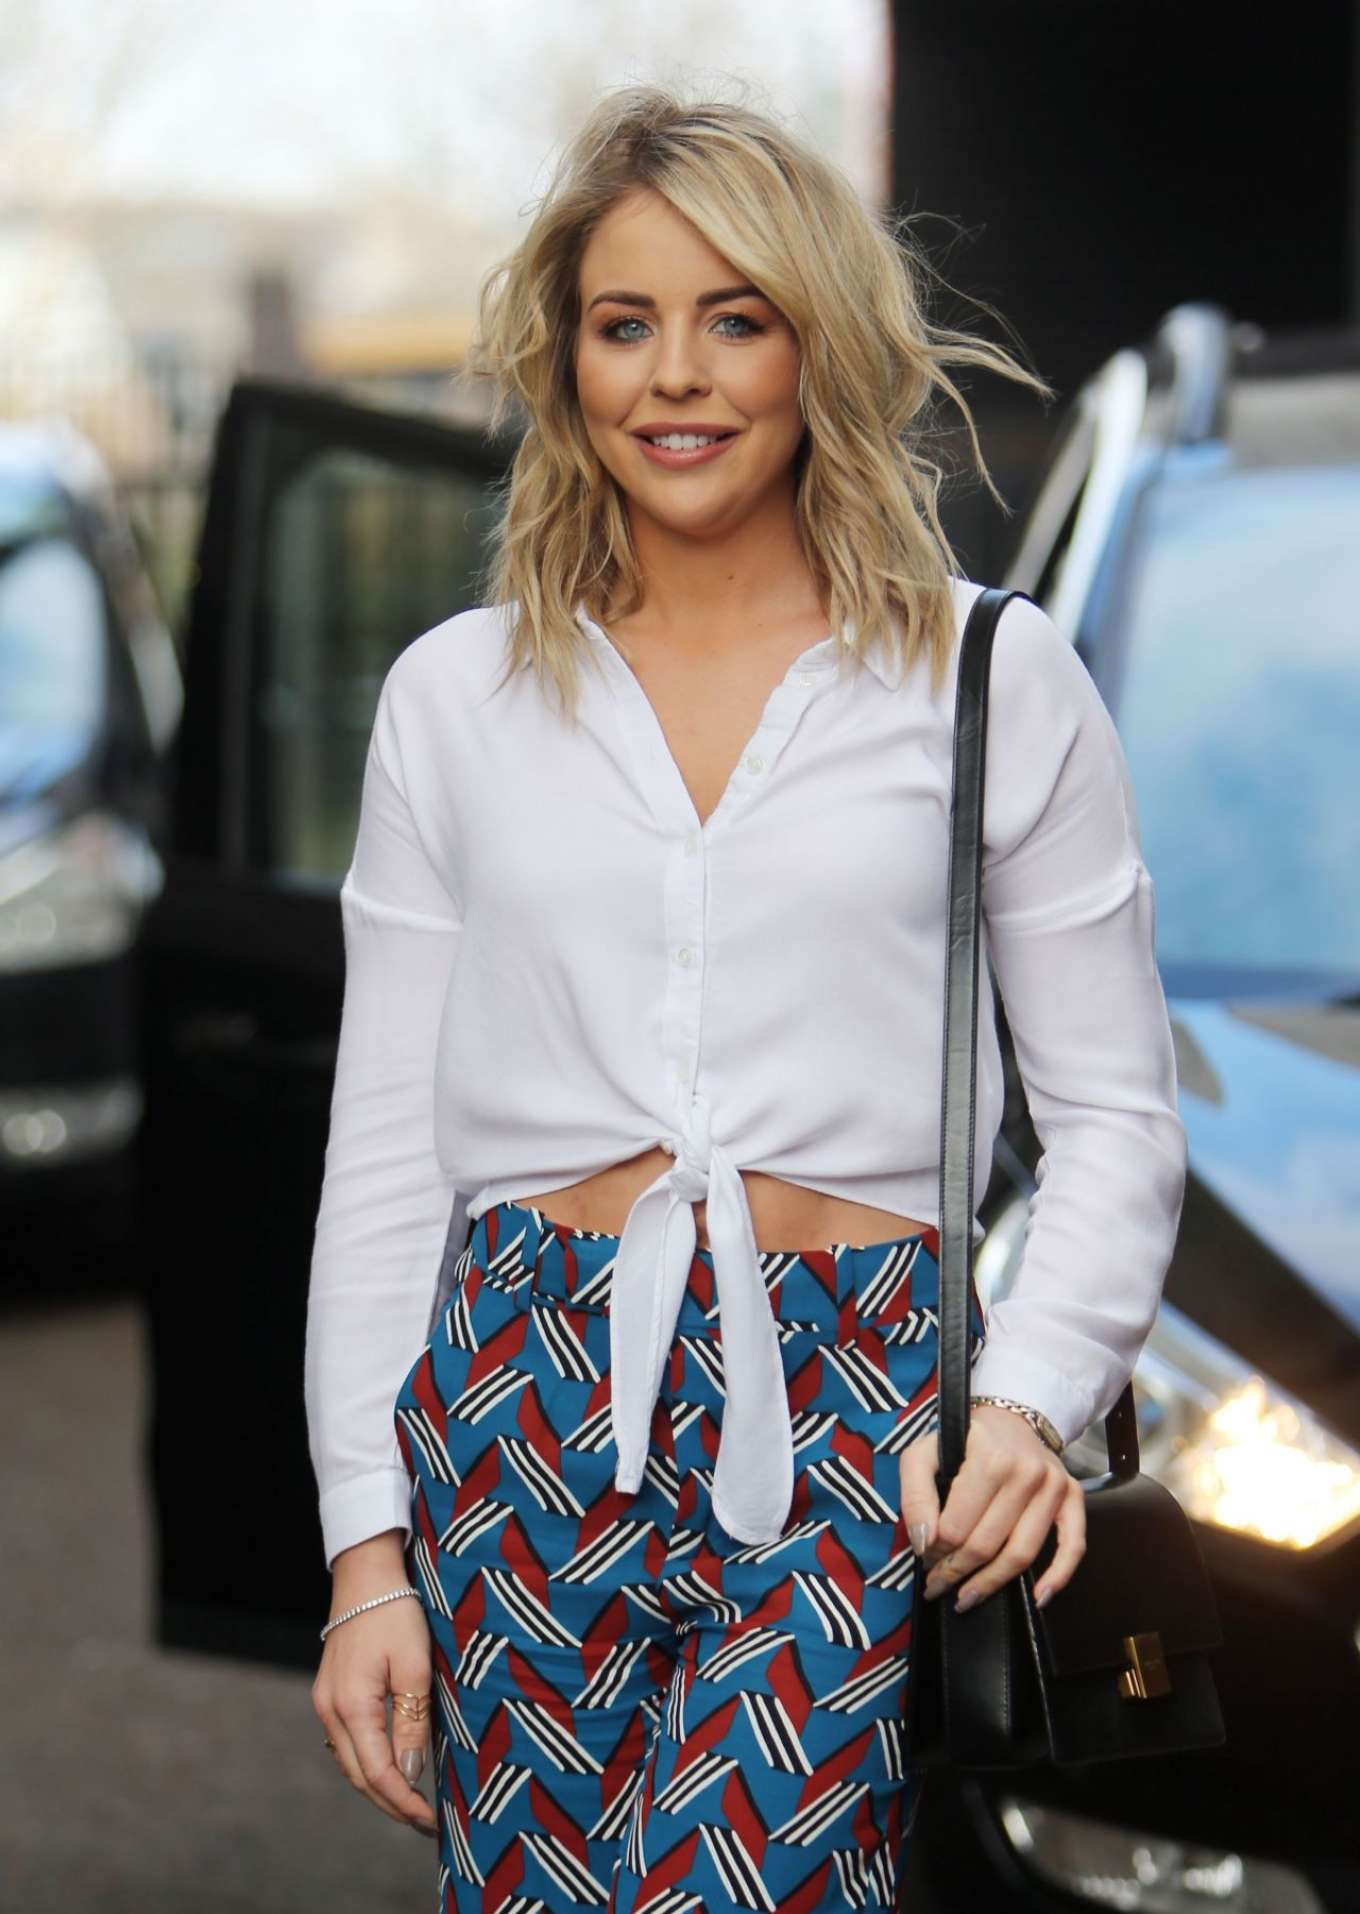 Photos Lydia Bright nude (56 photos), Topless, Fappening, Feet, lingerie 2019